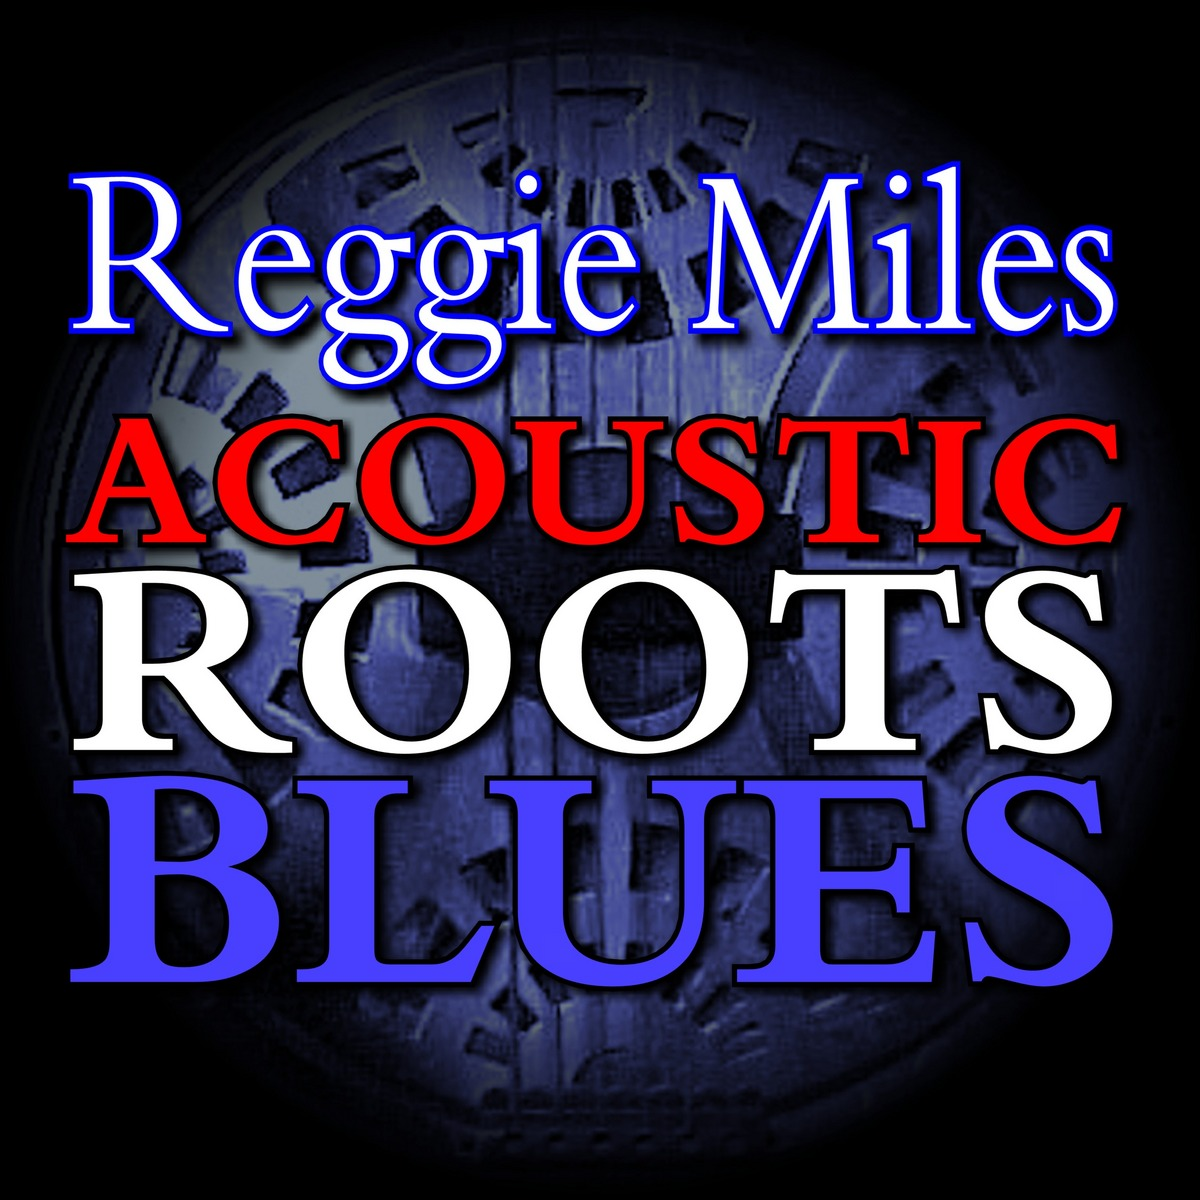 Reggie Miles - Acoustic, Roots, Blues